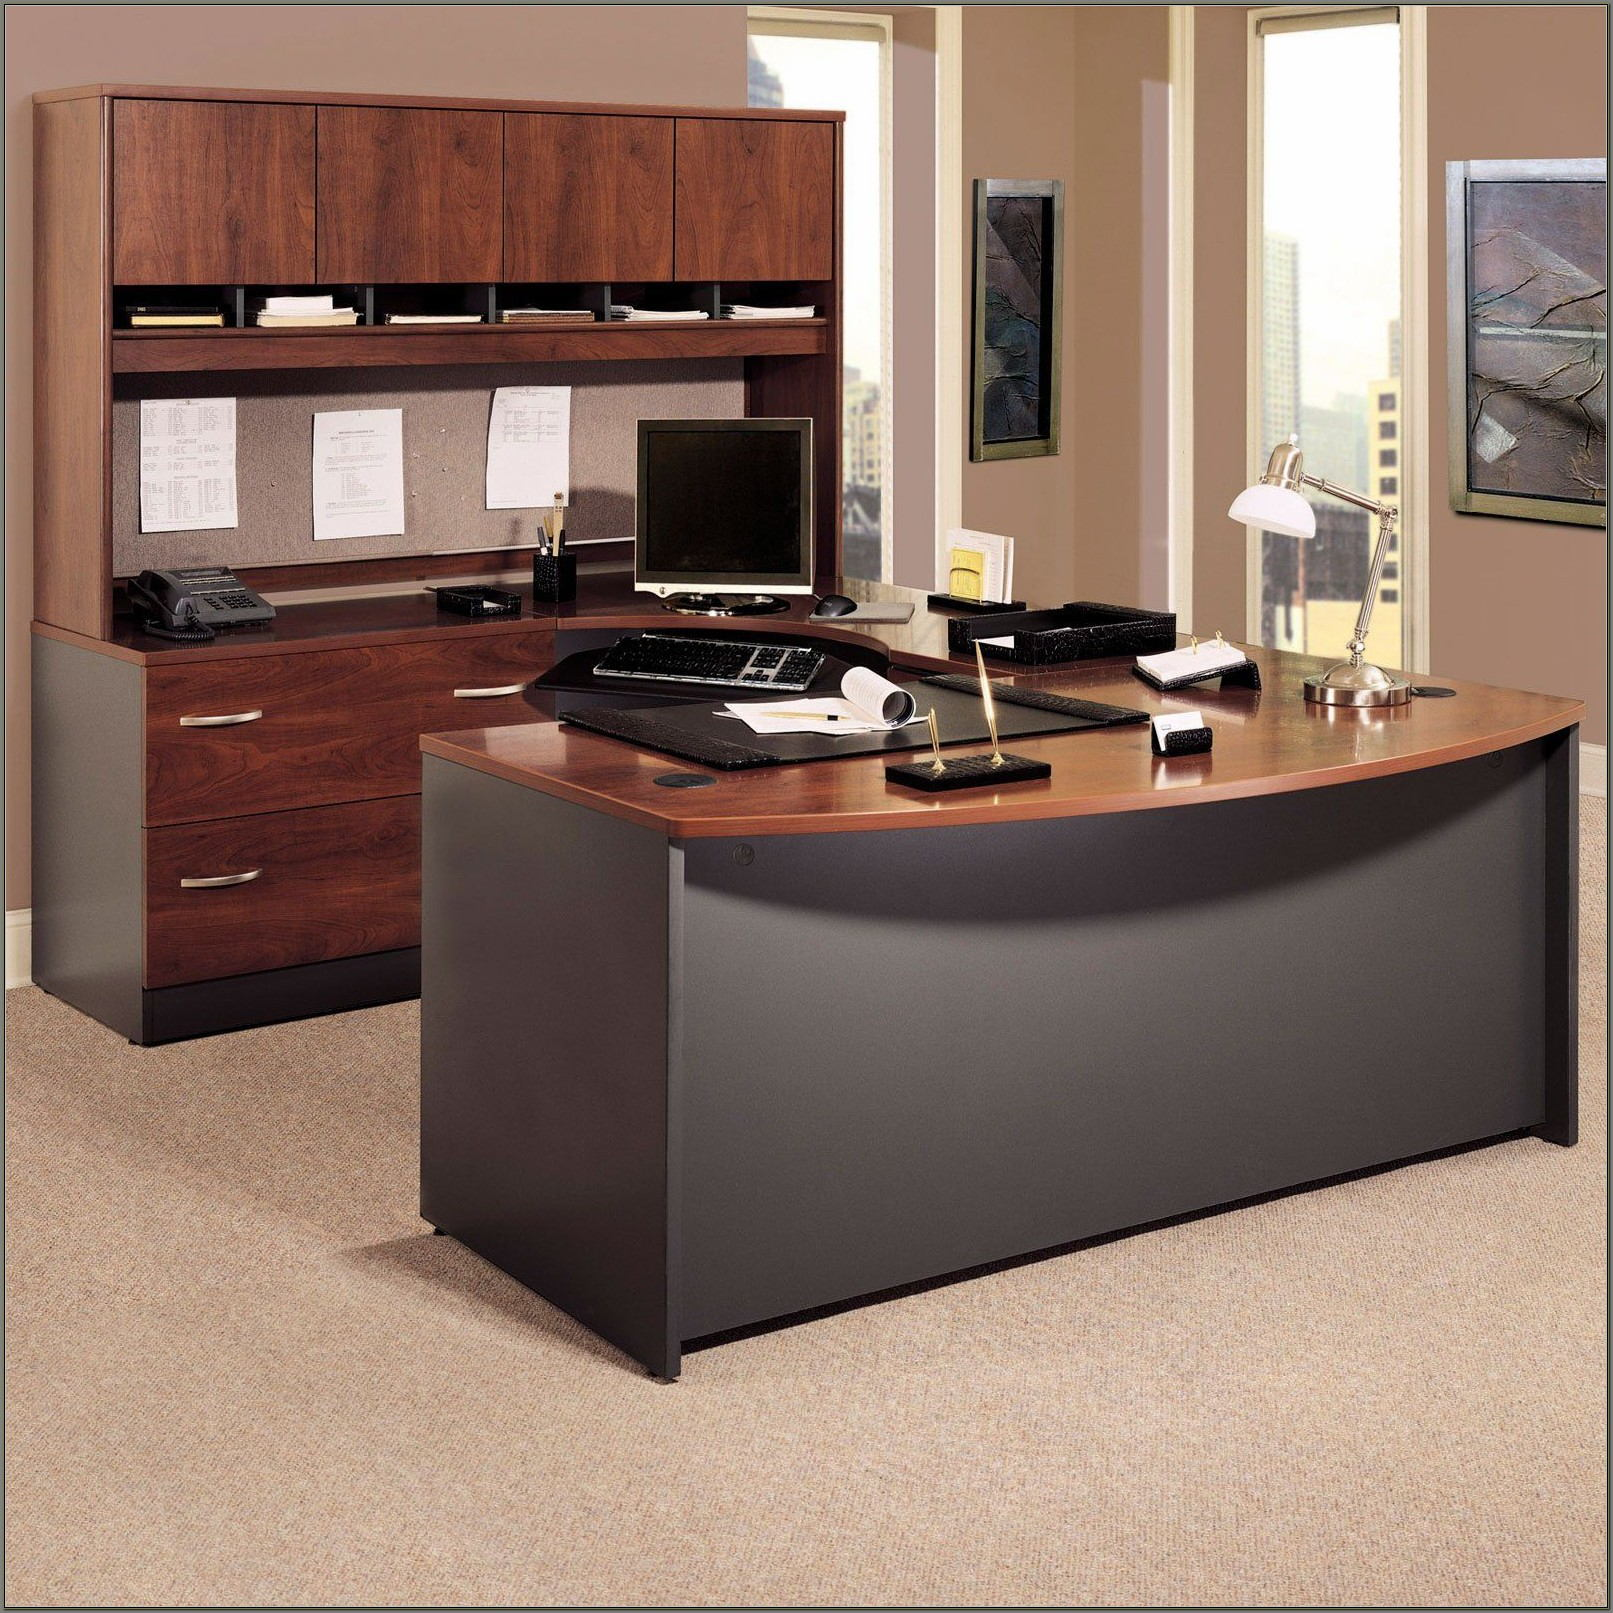 Realspace Broadstreet Contoured U Shaped Desk Dimensions